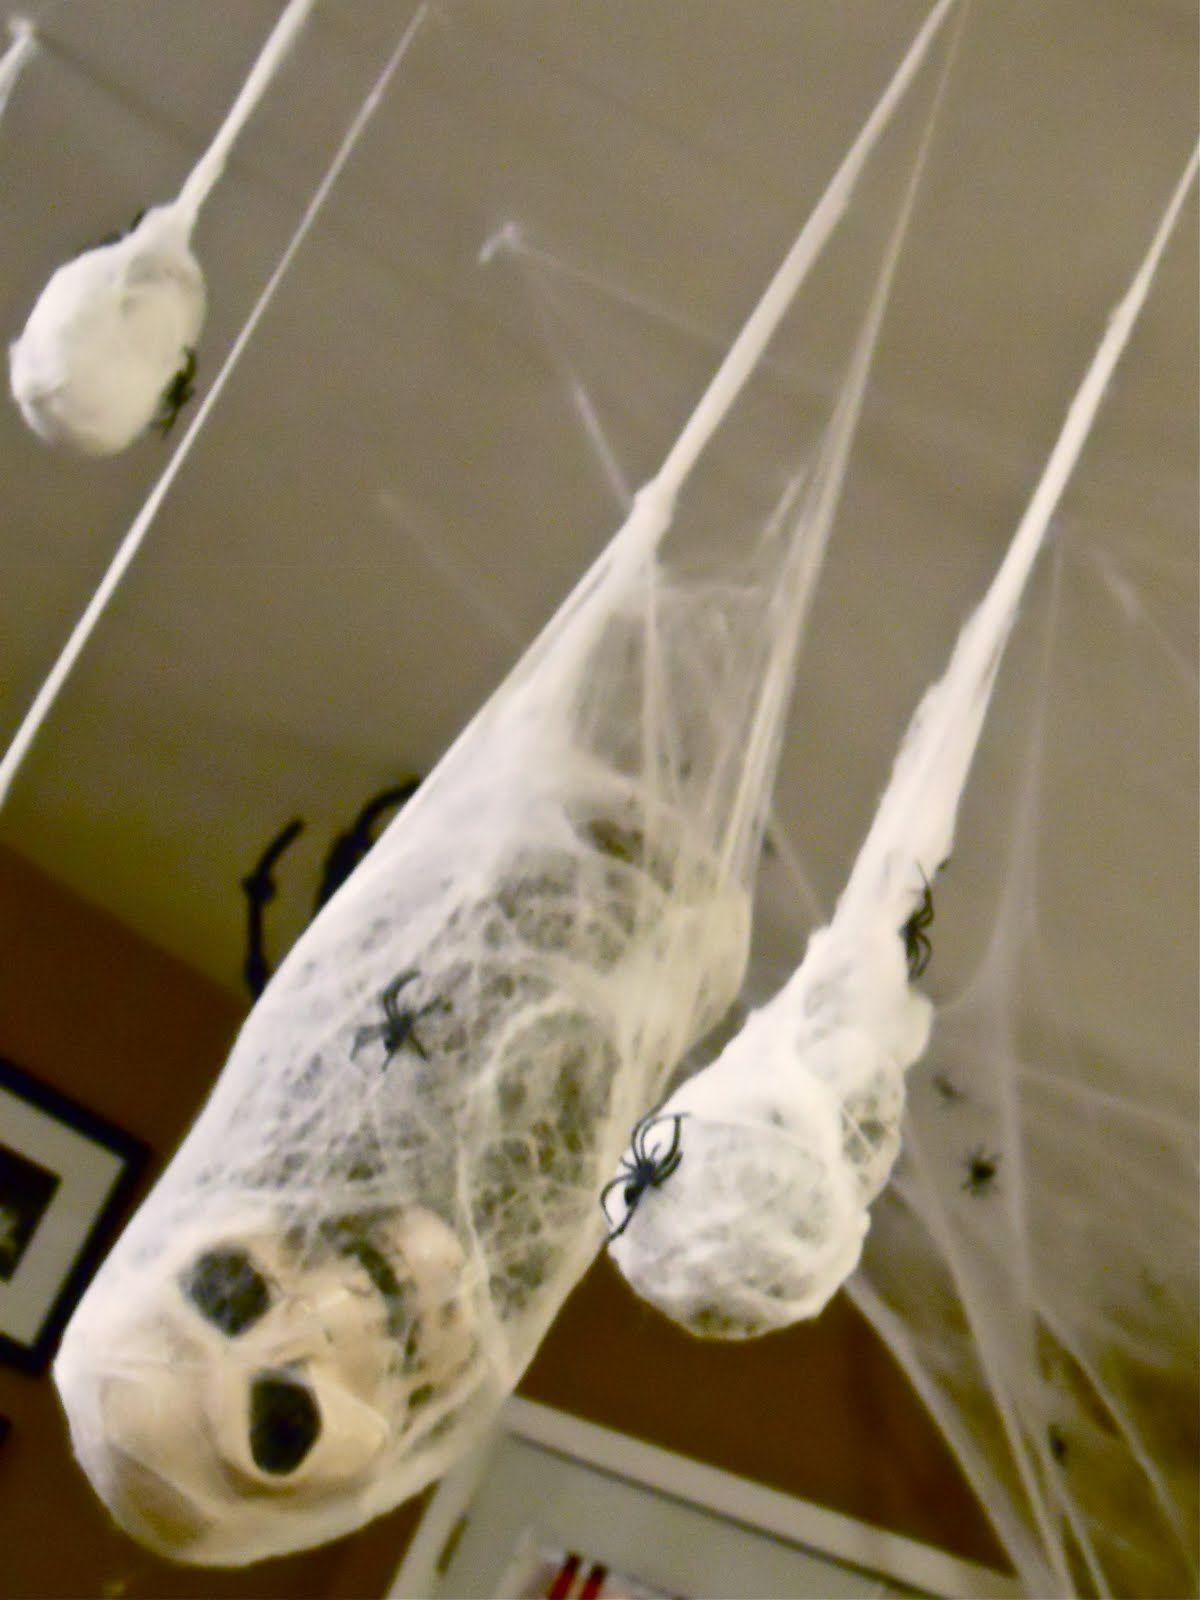 & 20 Super Scary Halloween Decorations